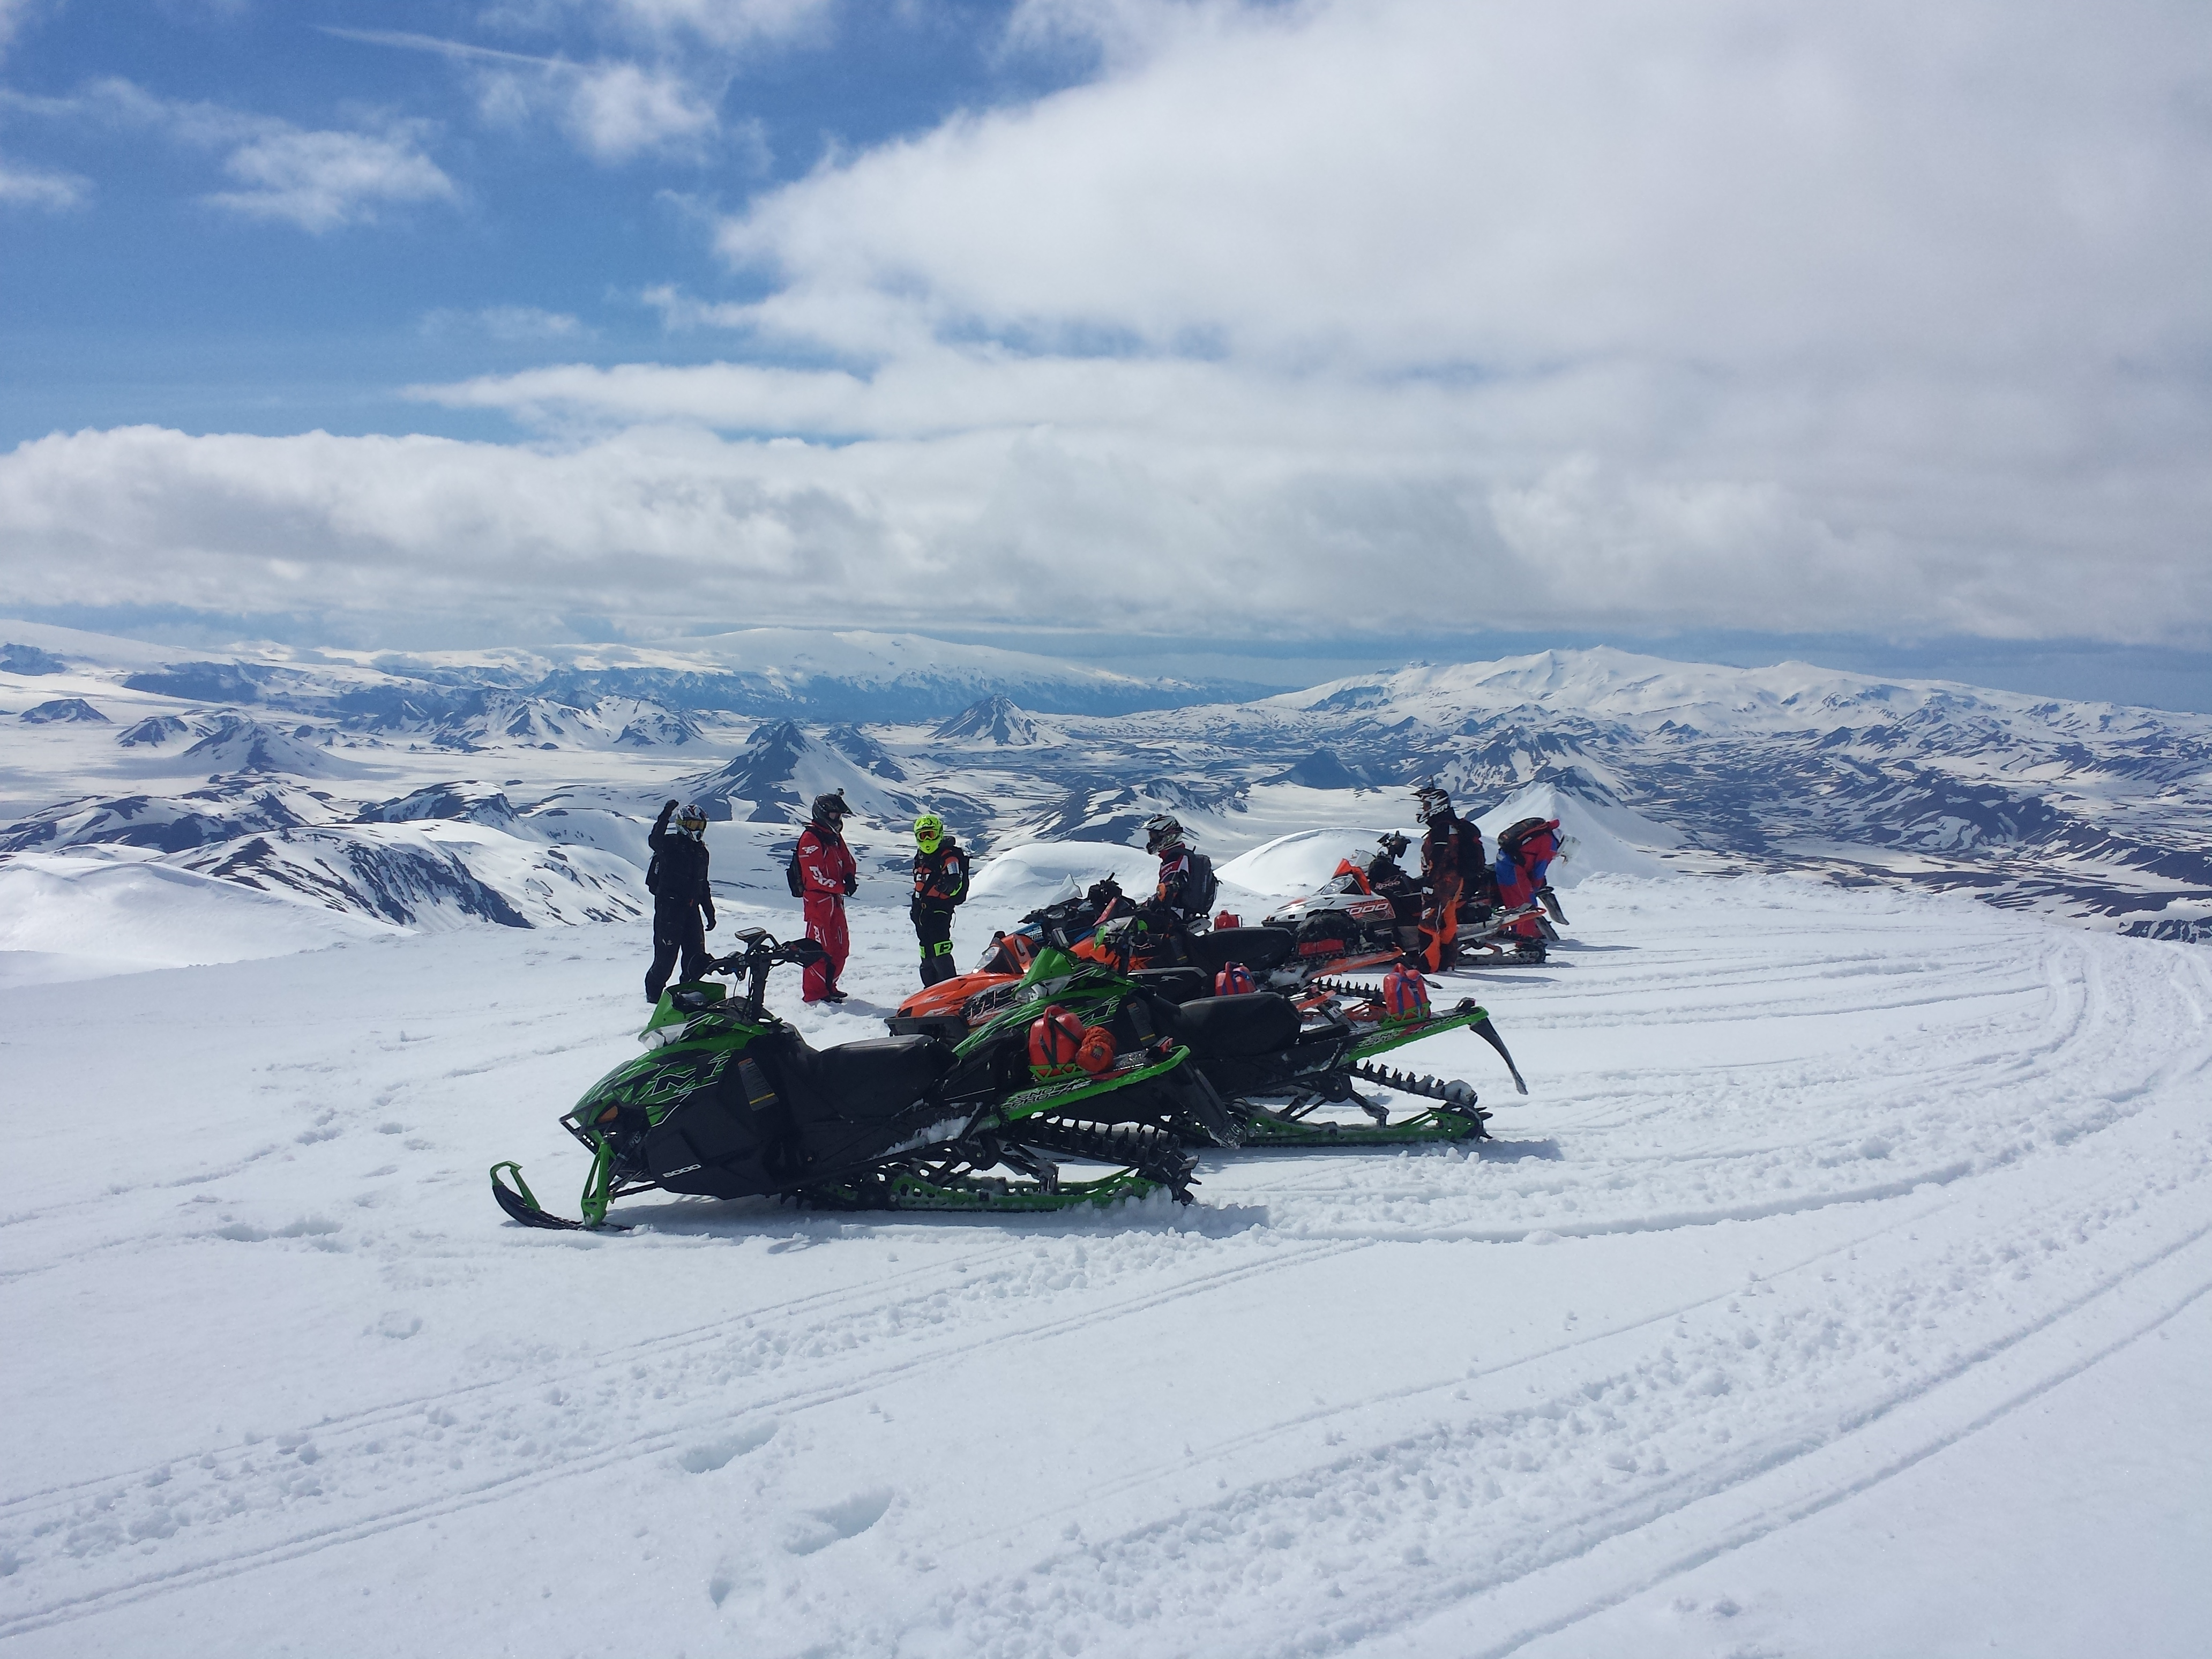 A Snowmobiling tour is a great adventure for the whole family.